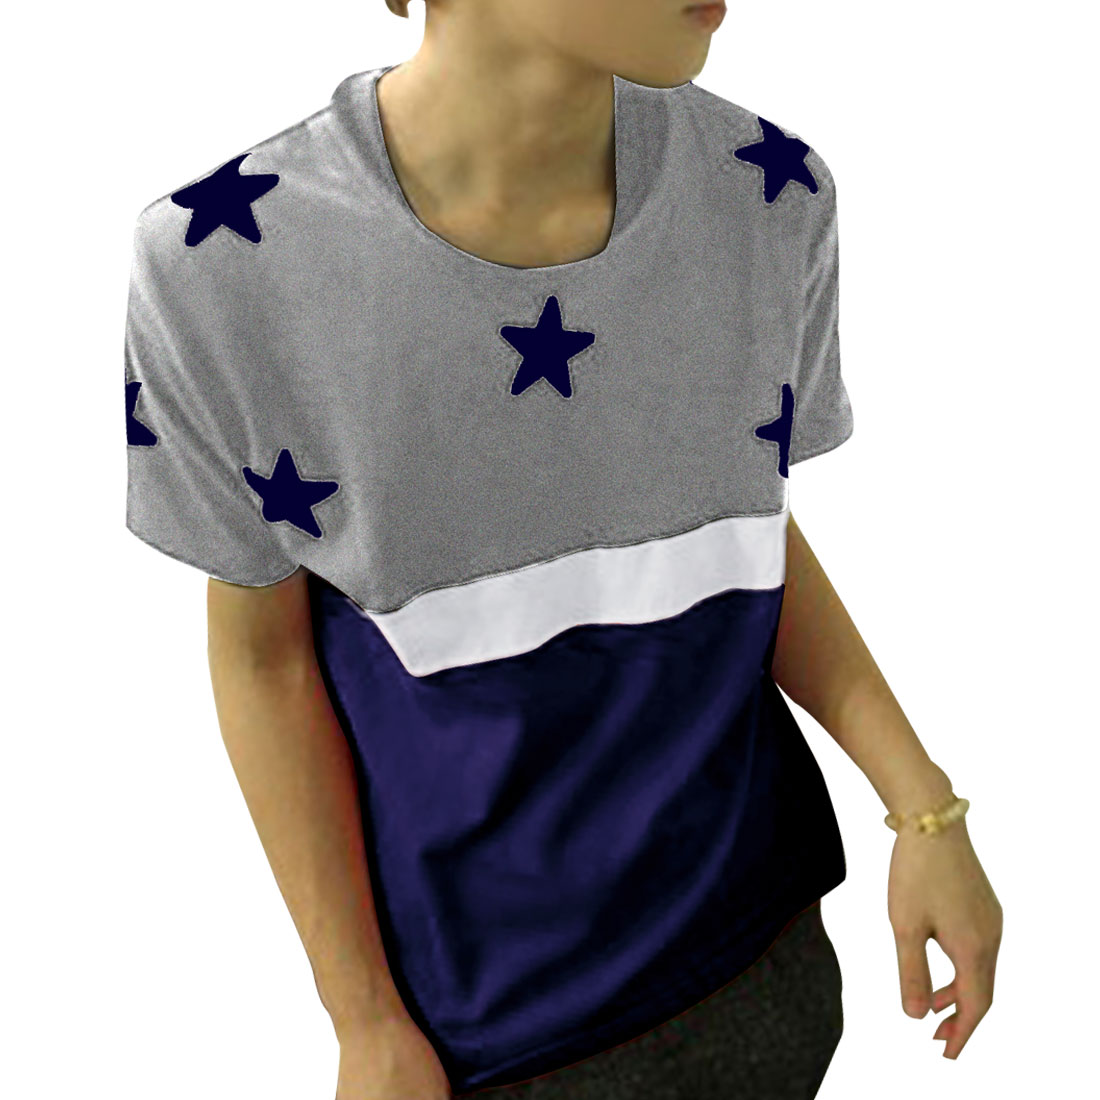 Man Stars Print Navy Blue White Gray Spliced Leisure T-Shirt Blouse Top S